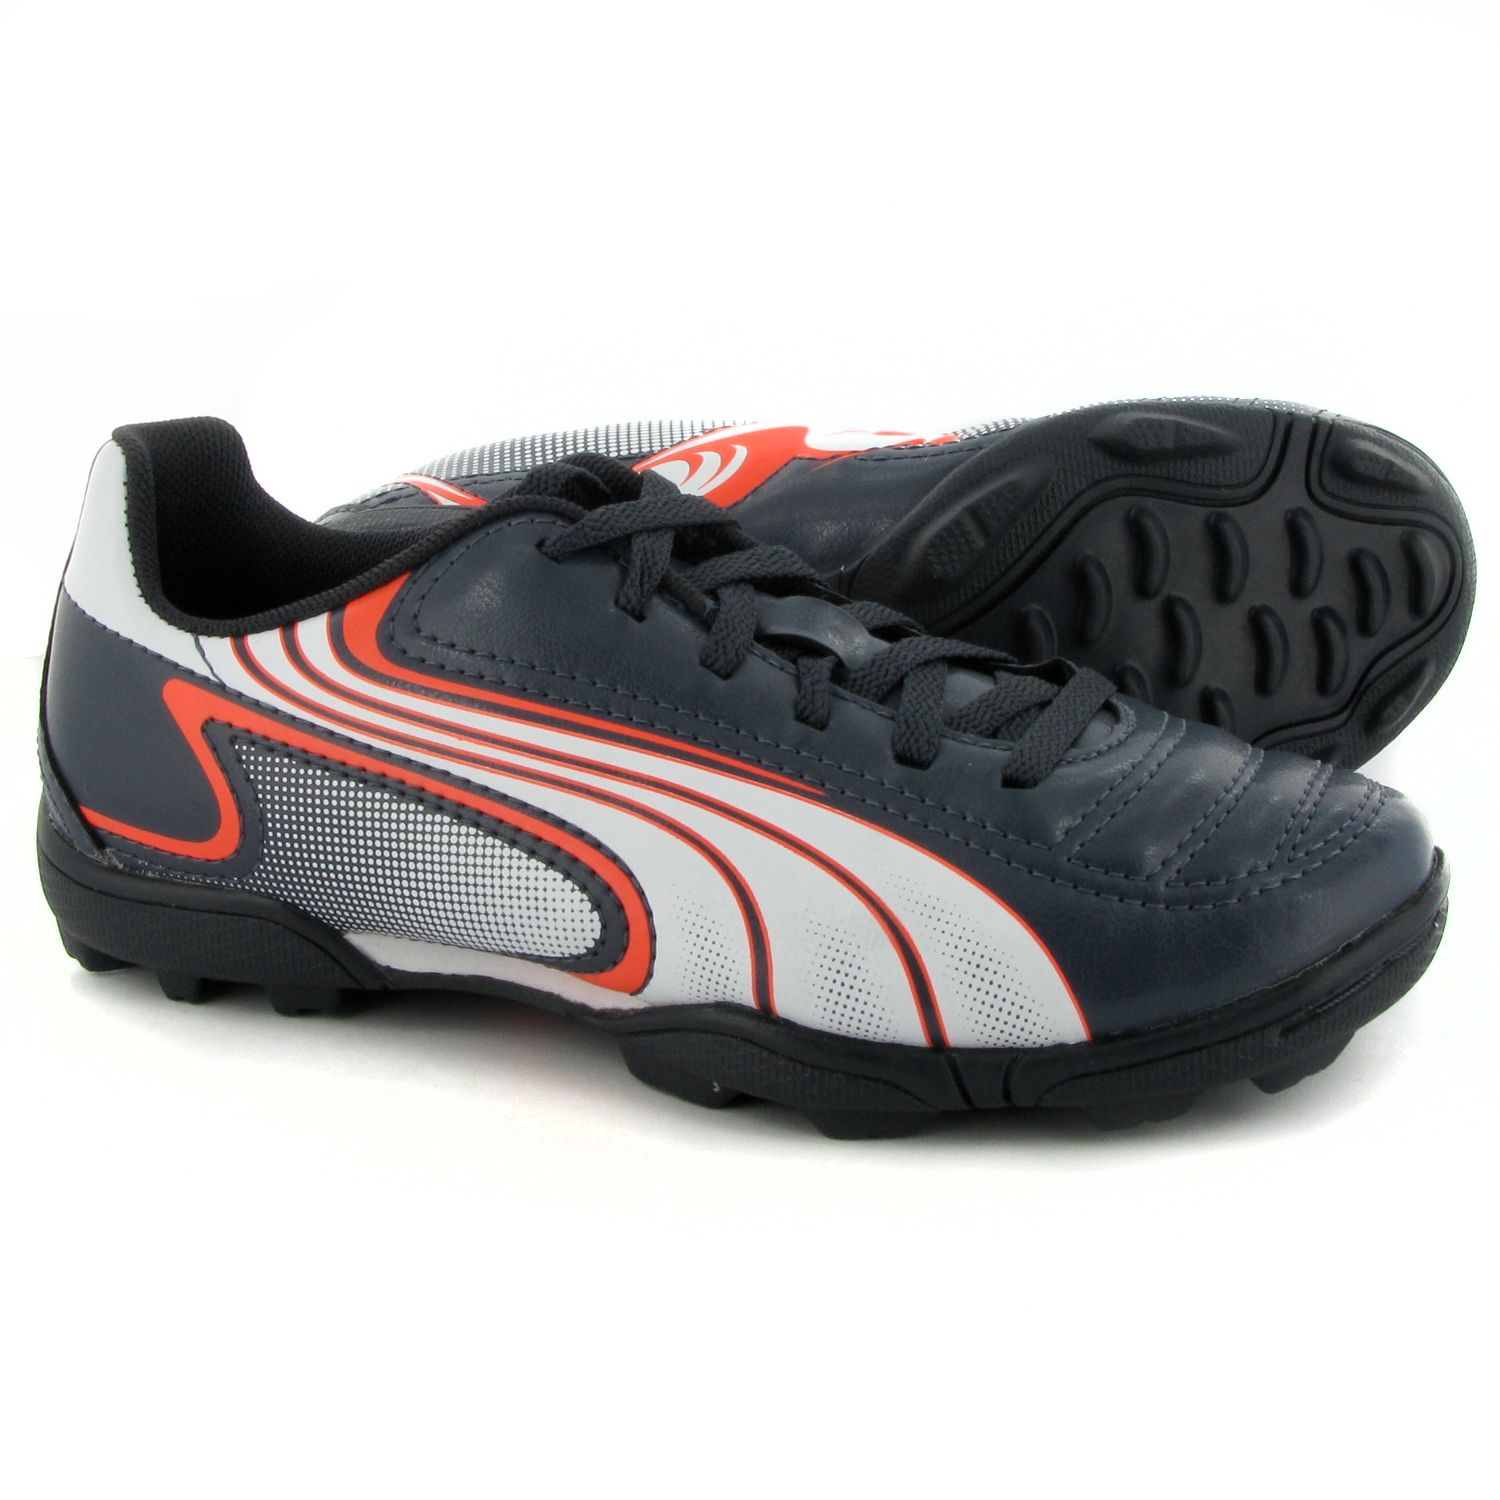 Puma-V6-11-I-Astro-Turf-Football-Trainers-Junior-Charcoal